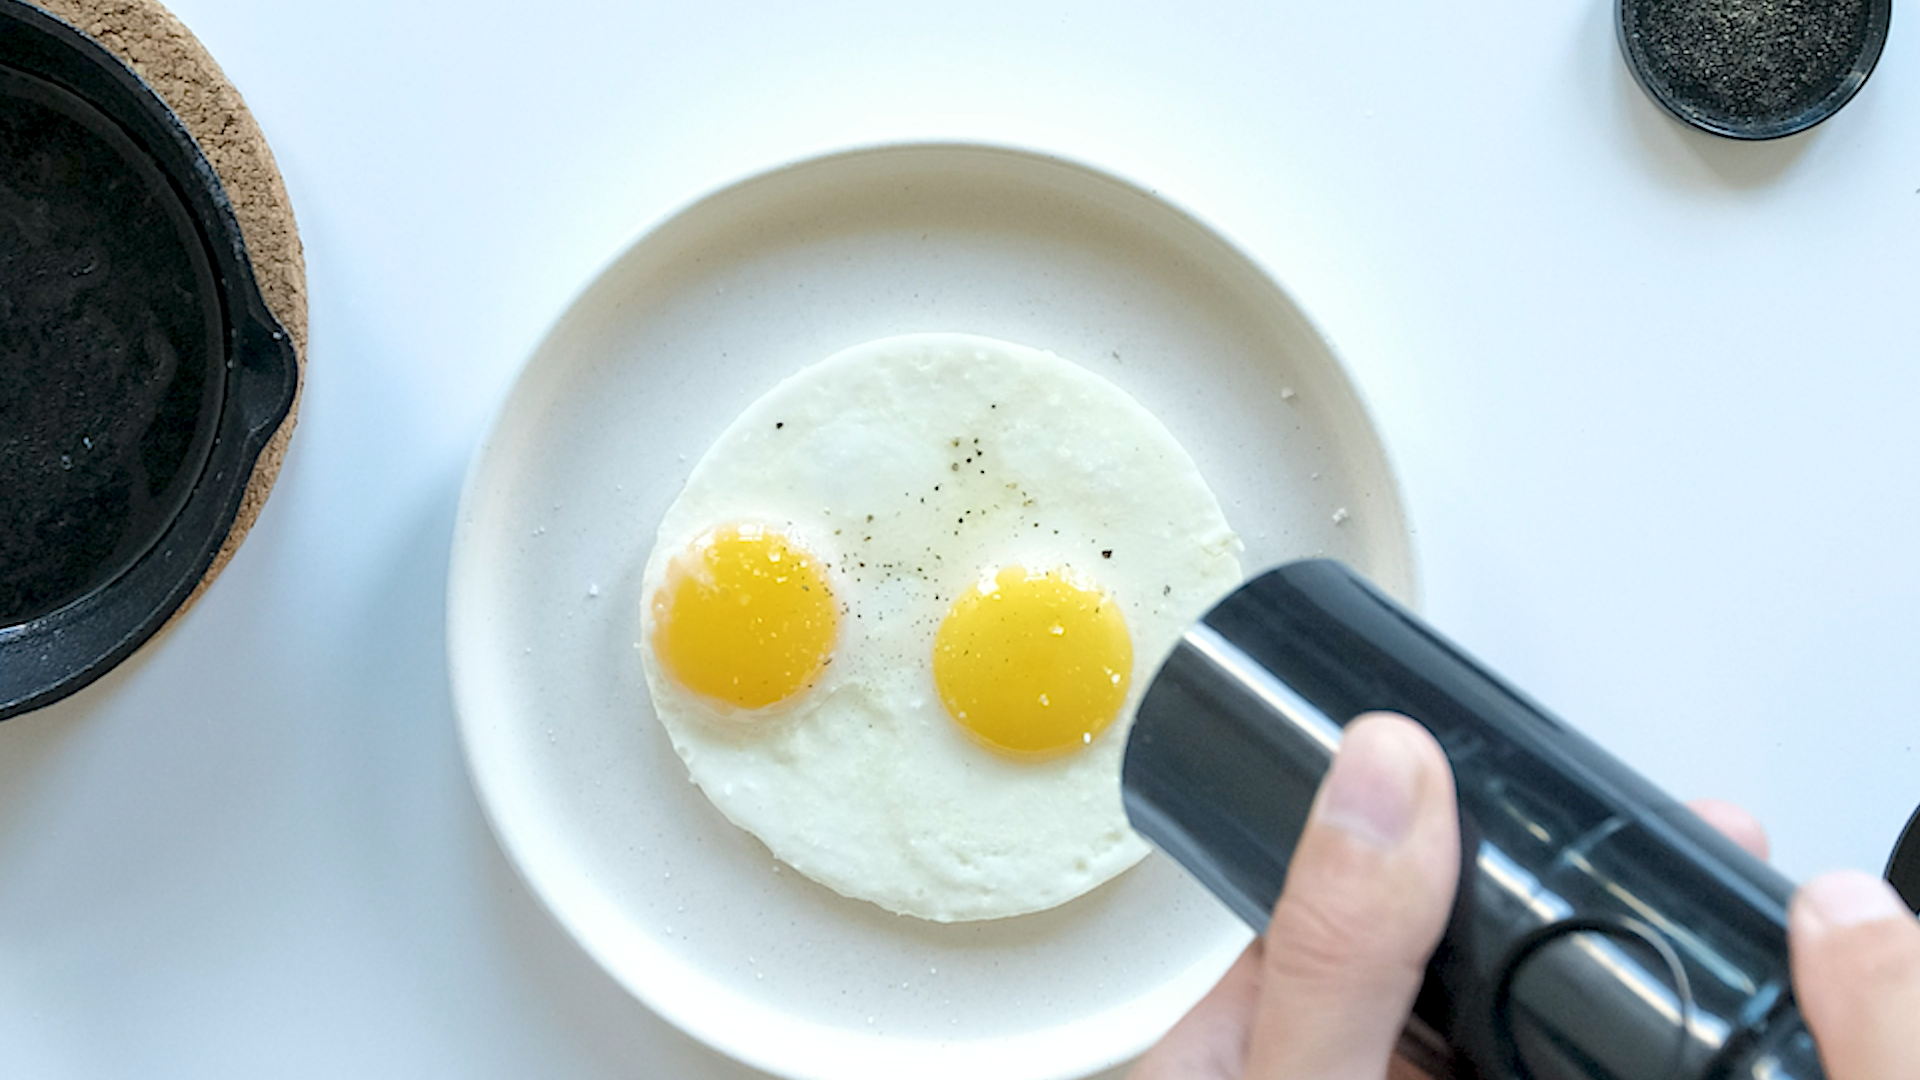 Fried eggs with salt and pepper.